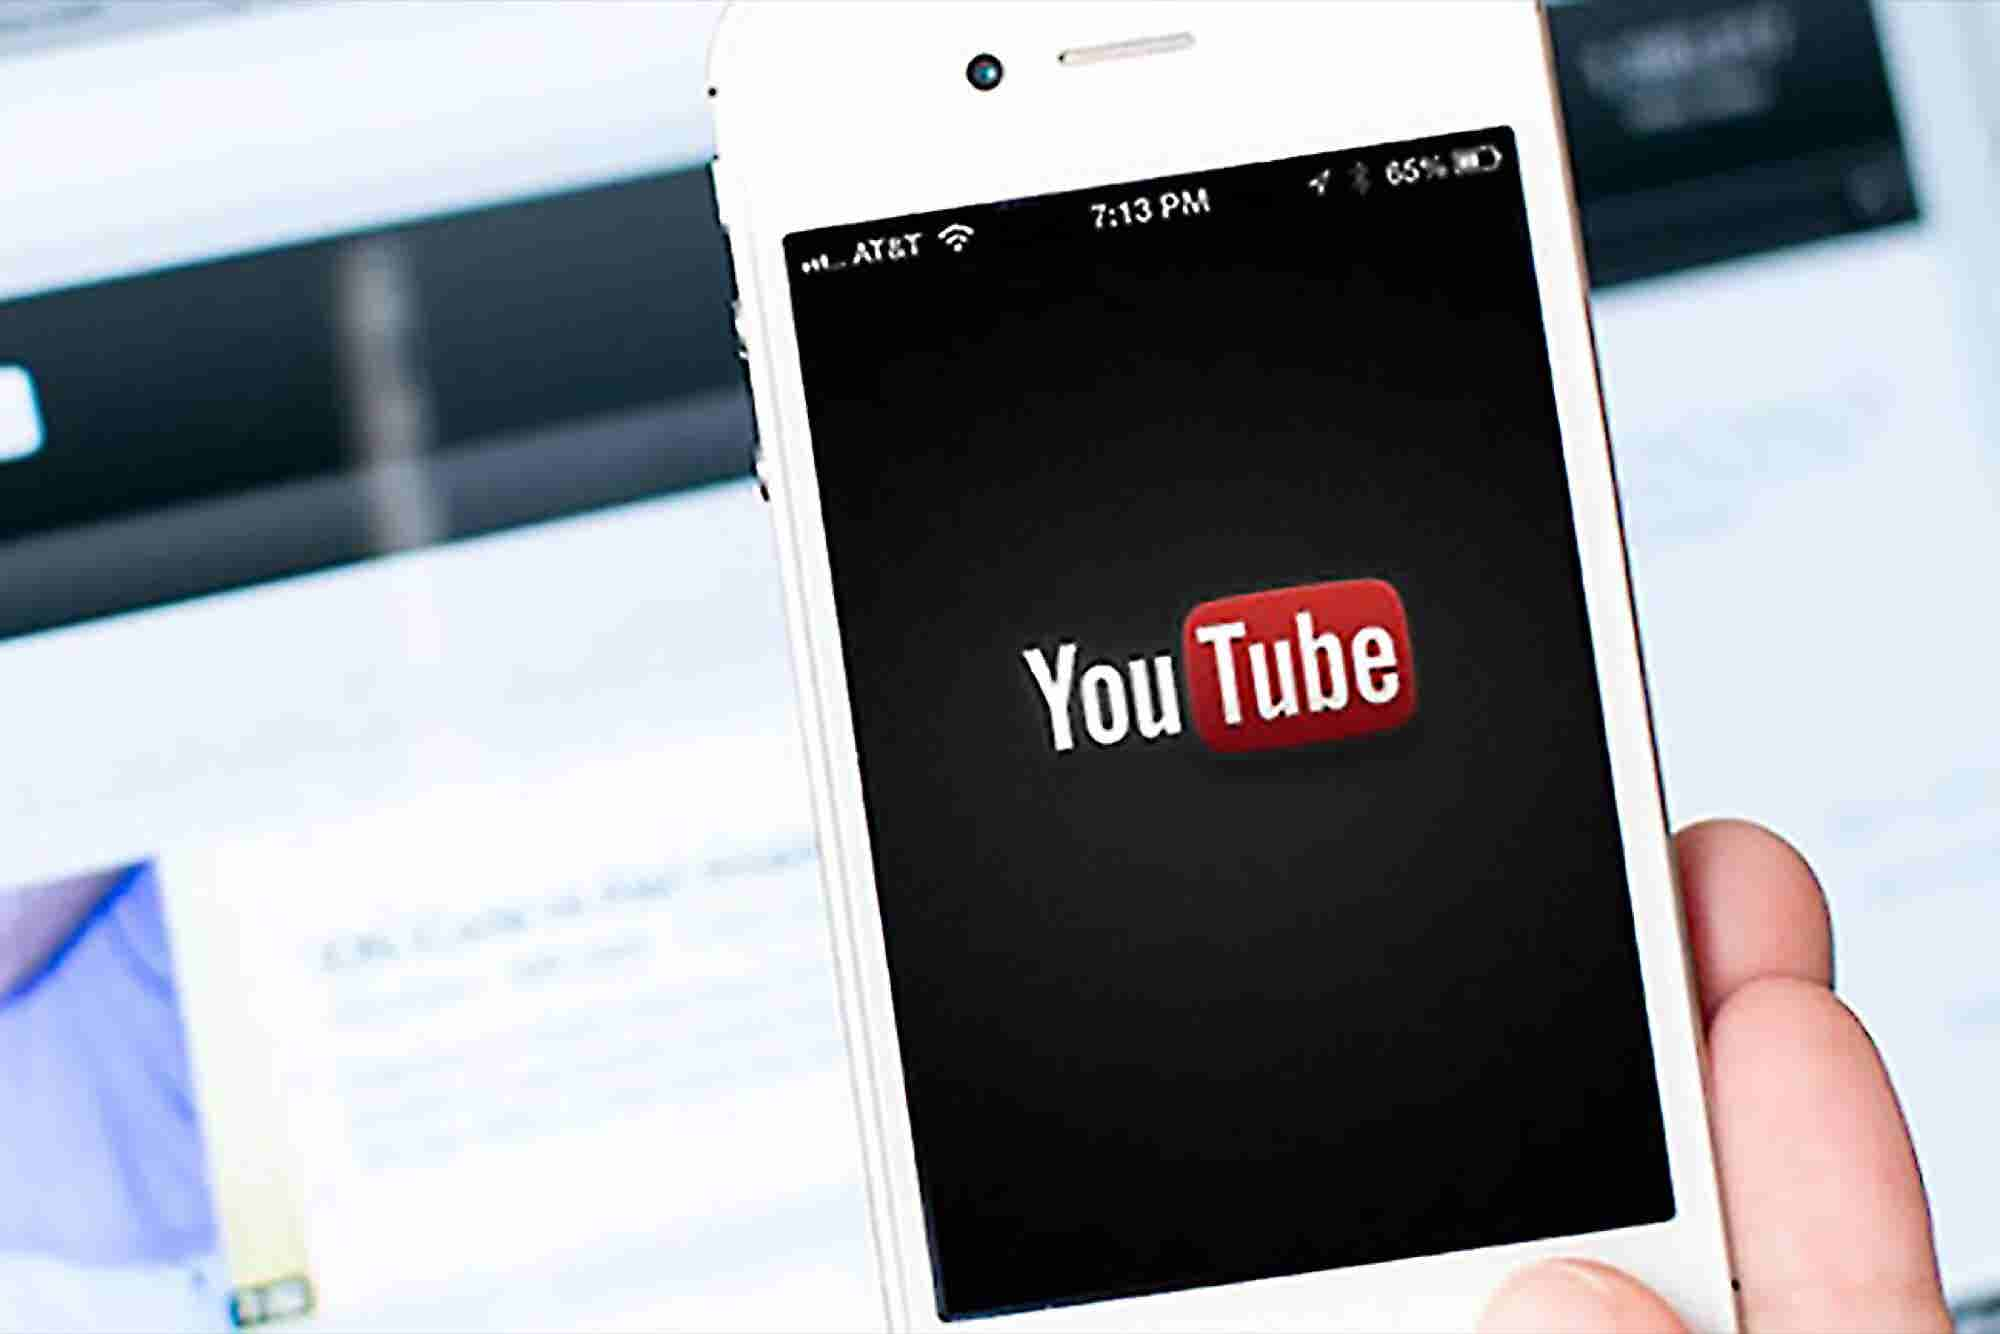 YouTube Apps Suggest Videos to Watch Next